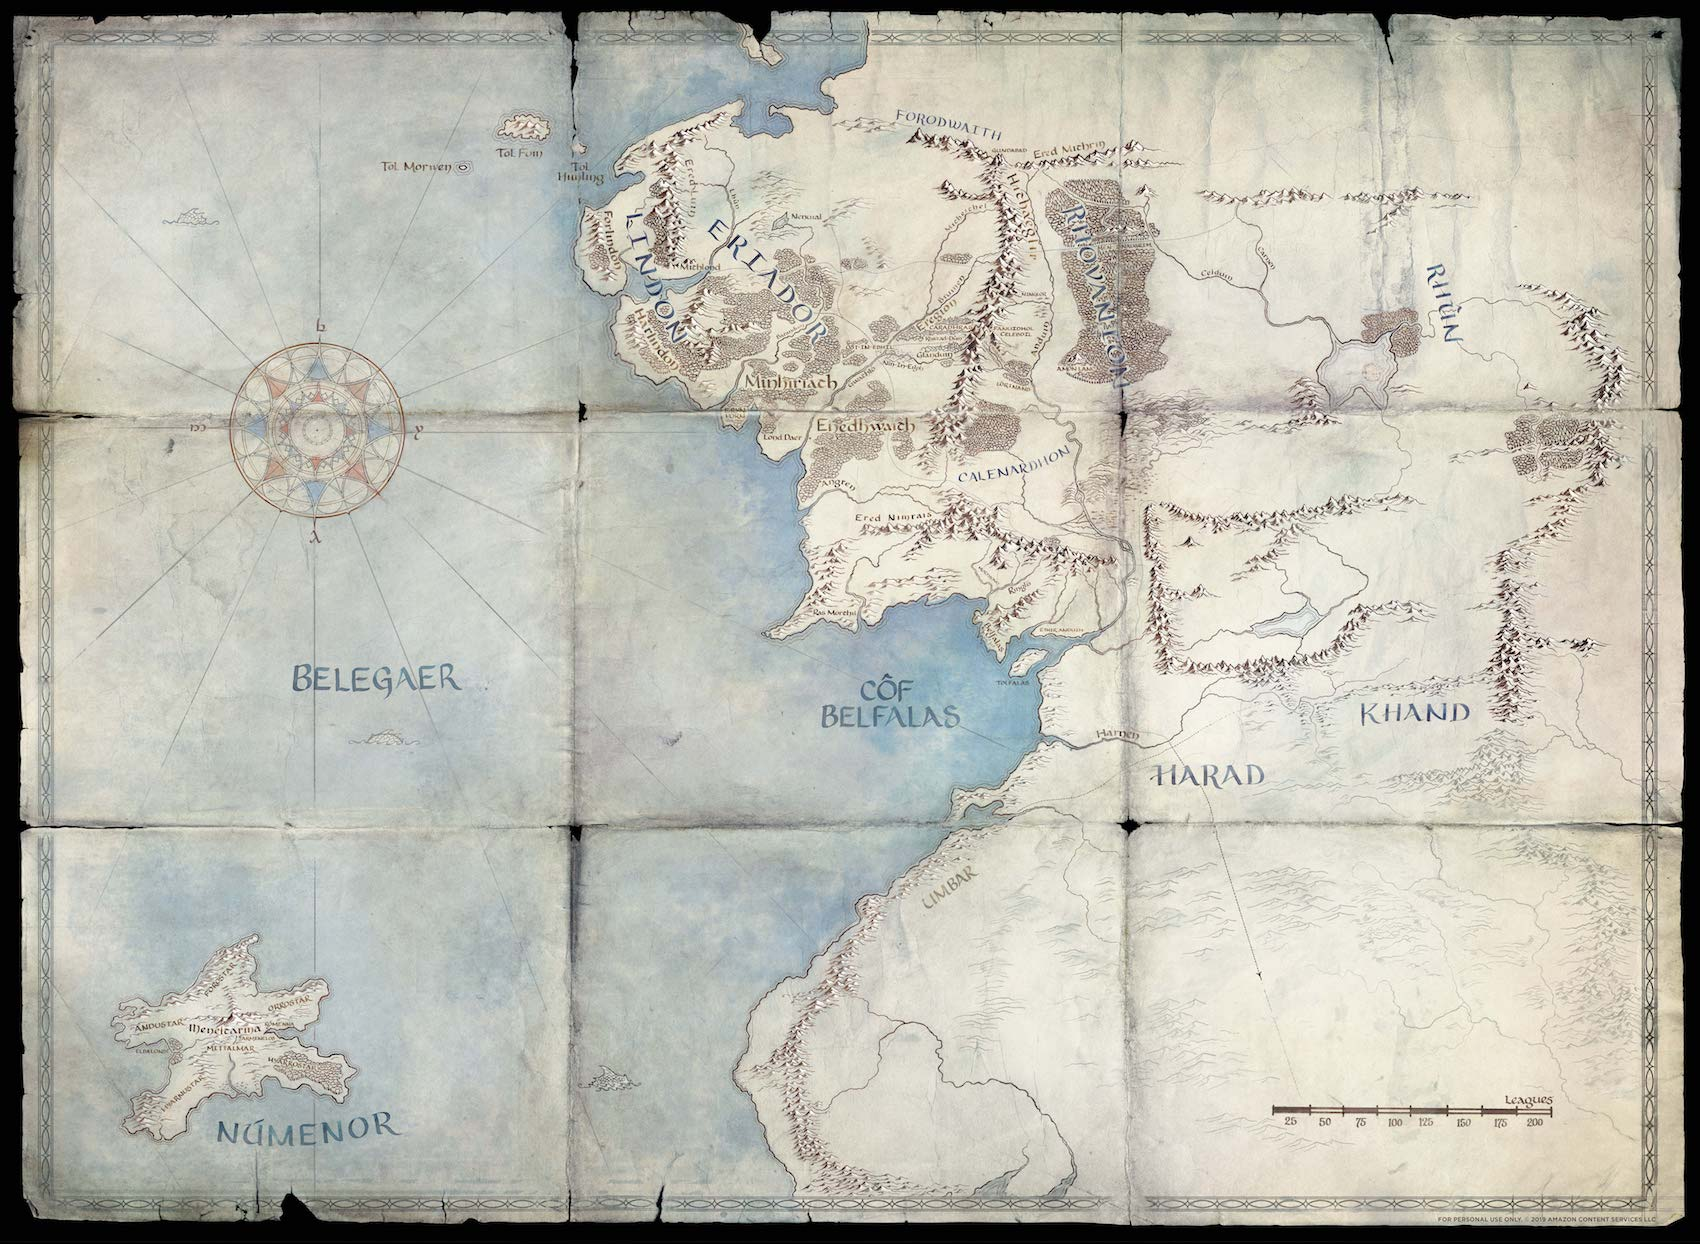 amazon studios lord of the rings second age tv show